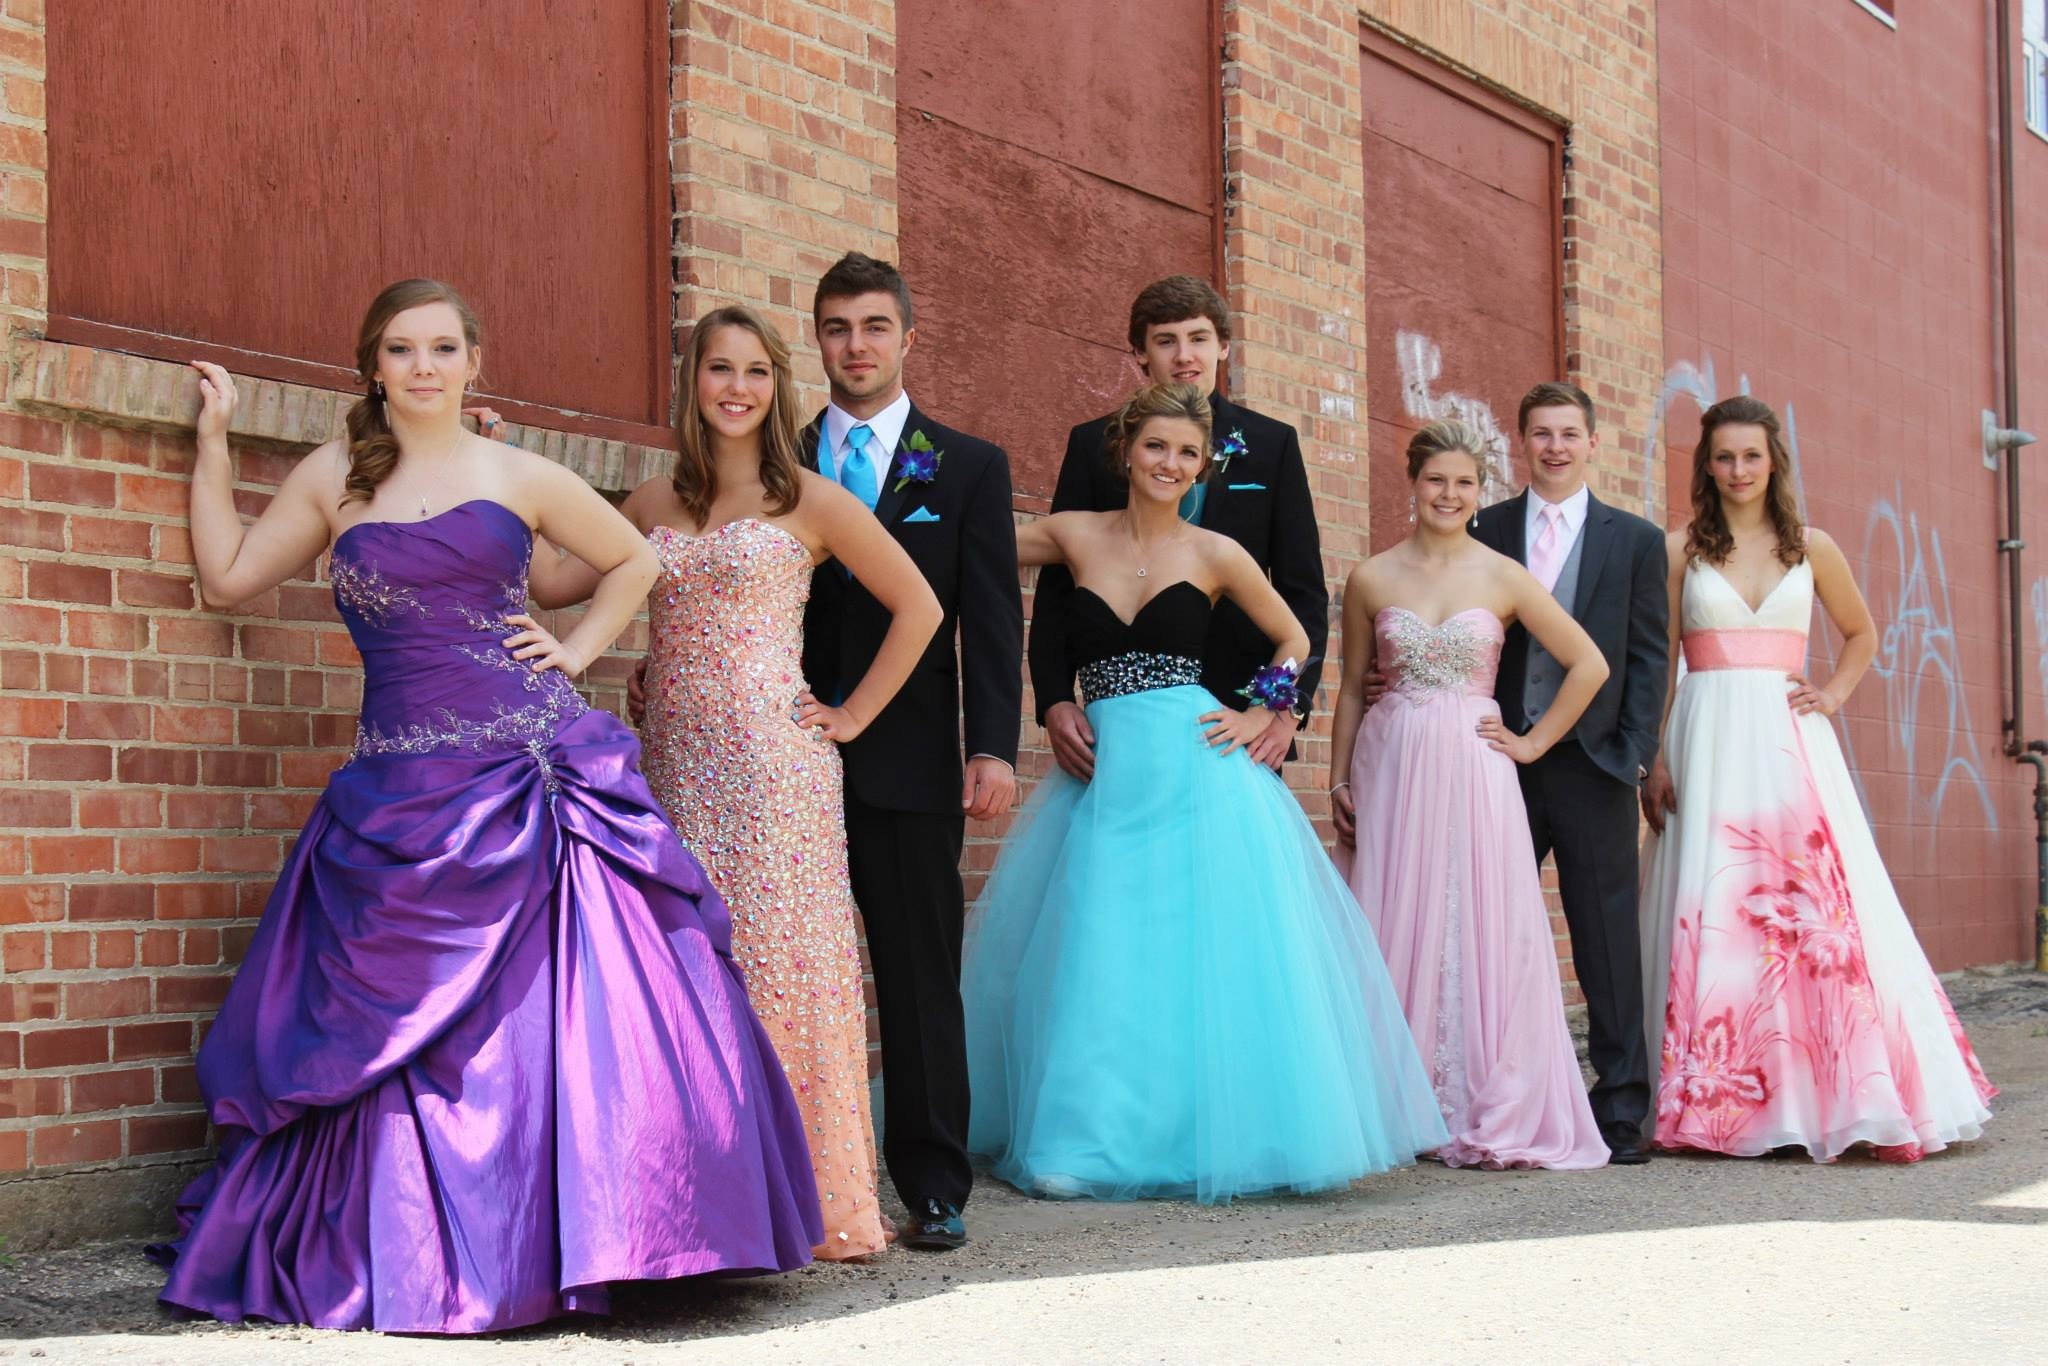 Prom Photographer A group of female and male graduates stand posed in a line against a brick wall, smiling at the camera